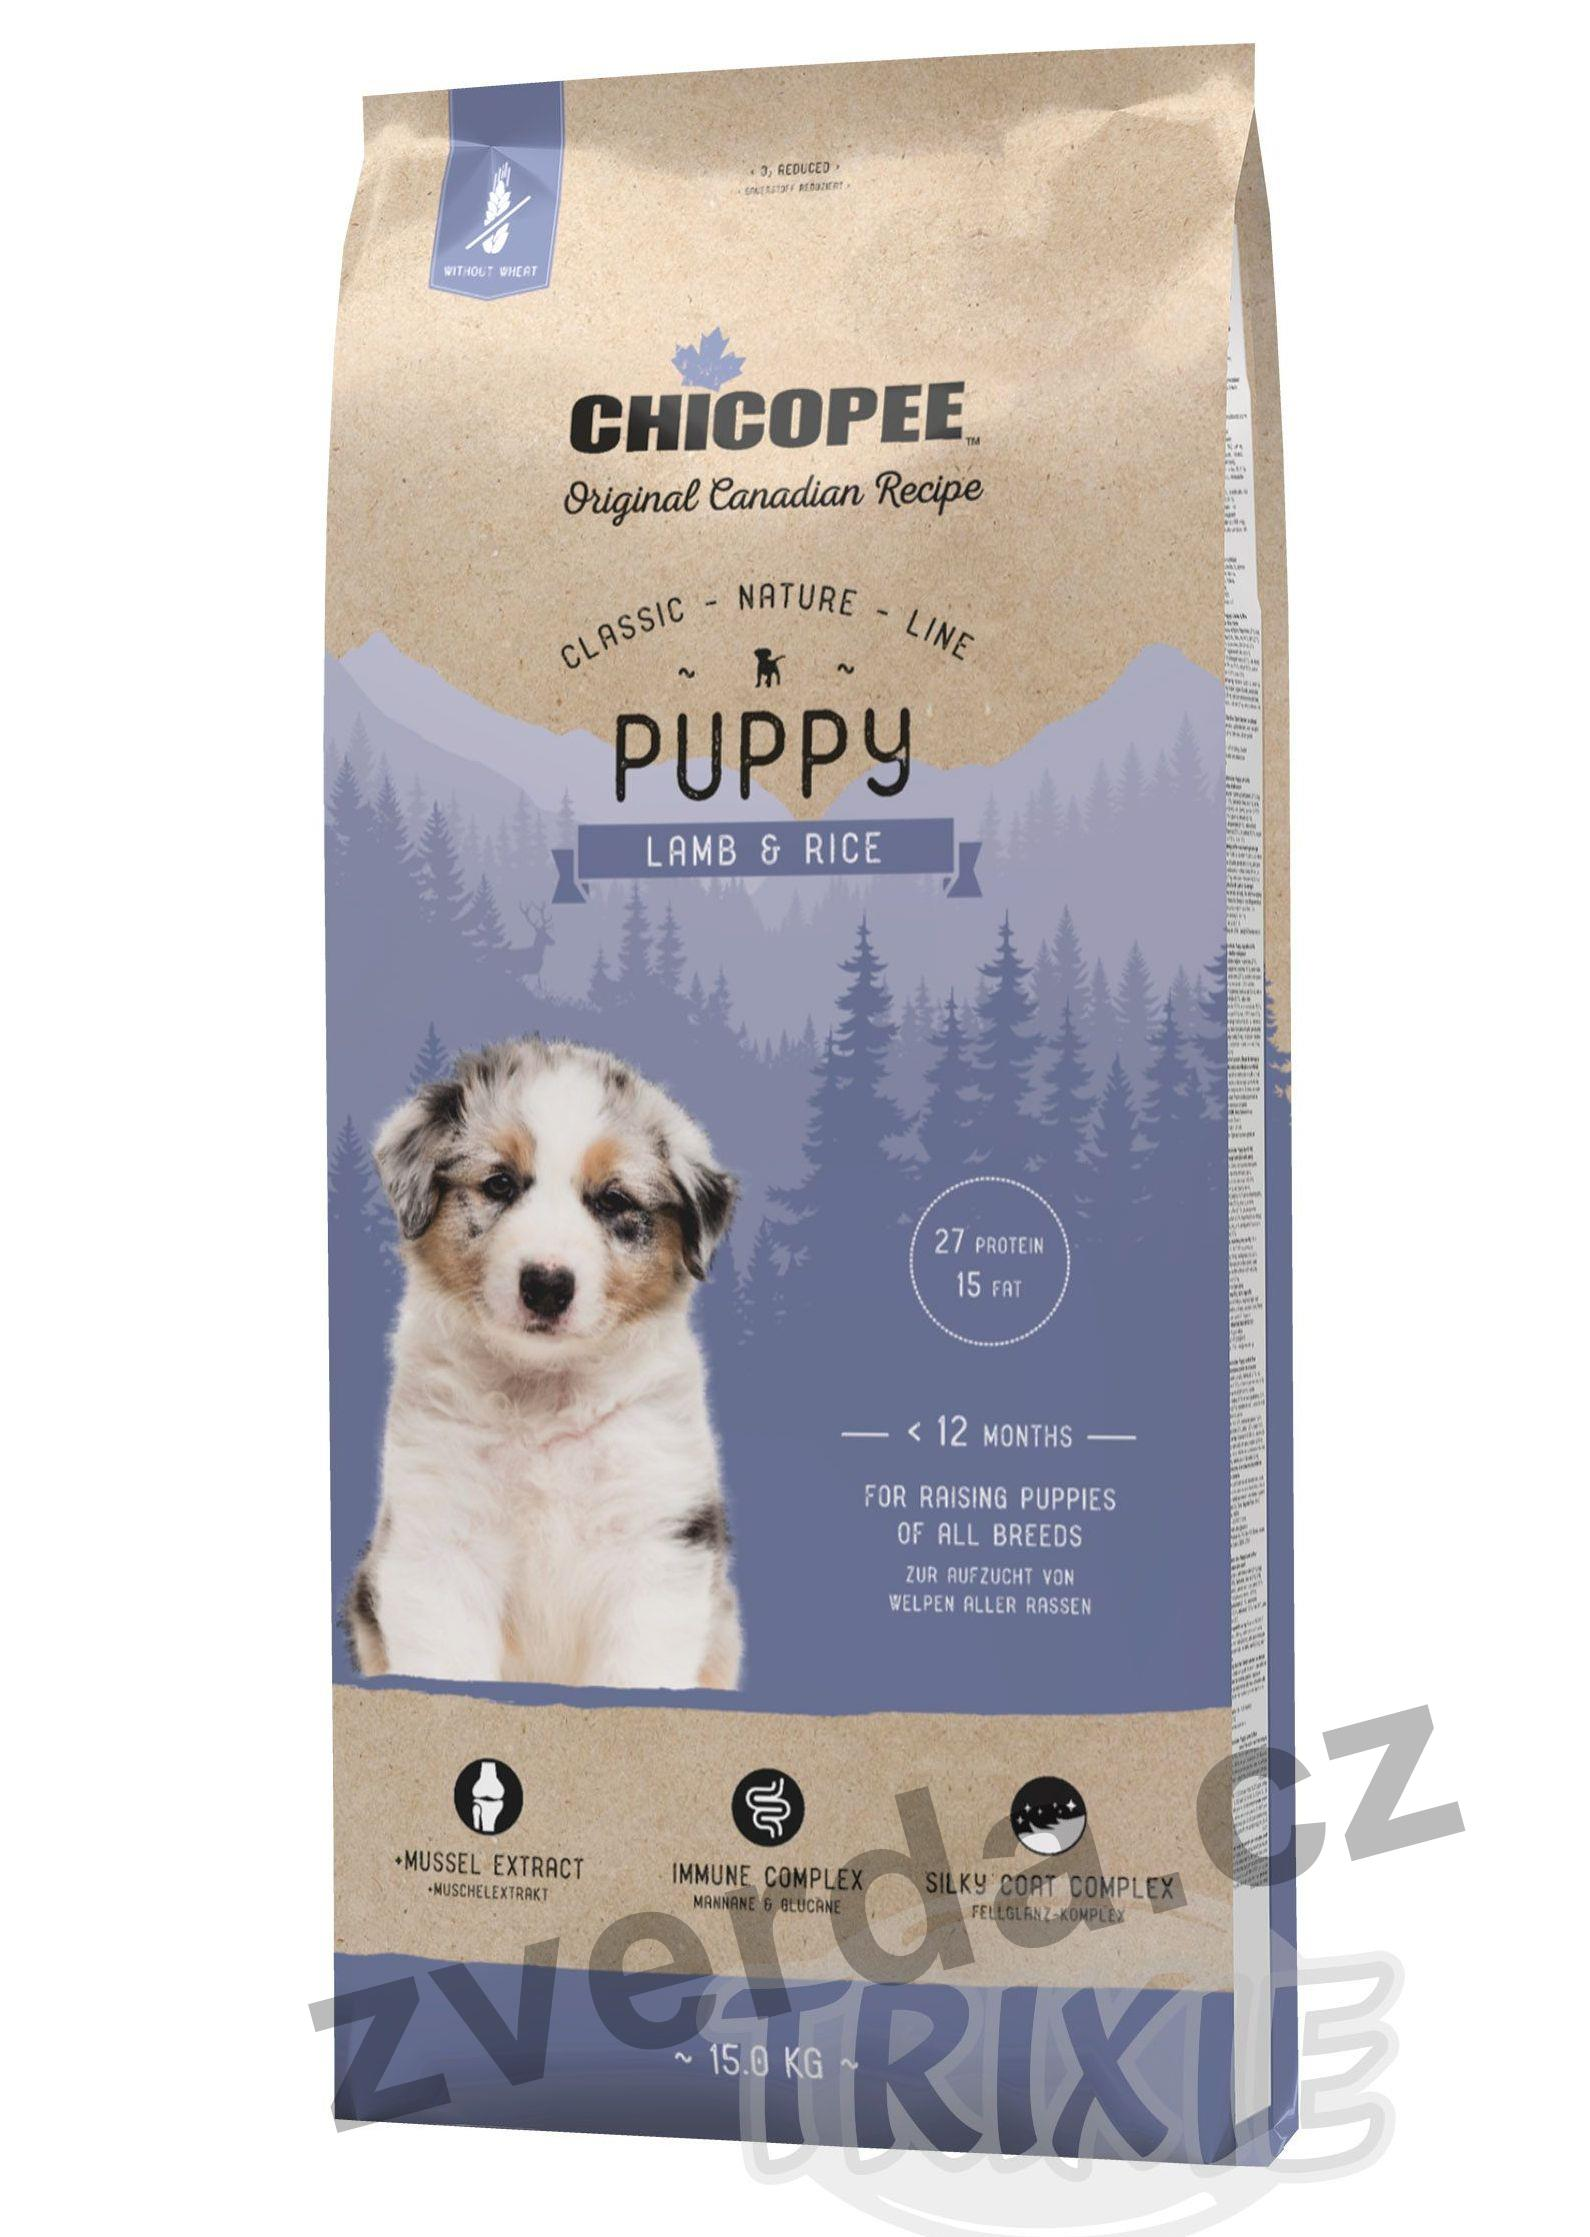 Chicopee Classic Nature Mini Puppy Lamb-Rice 15 kg